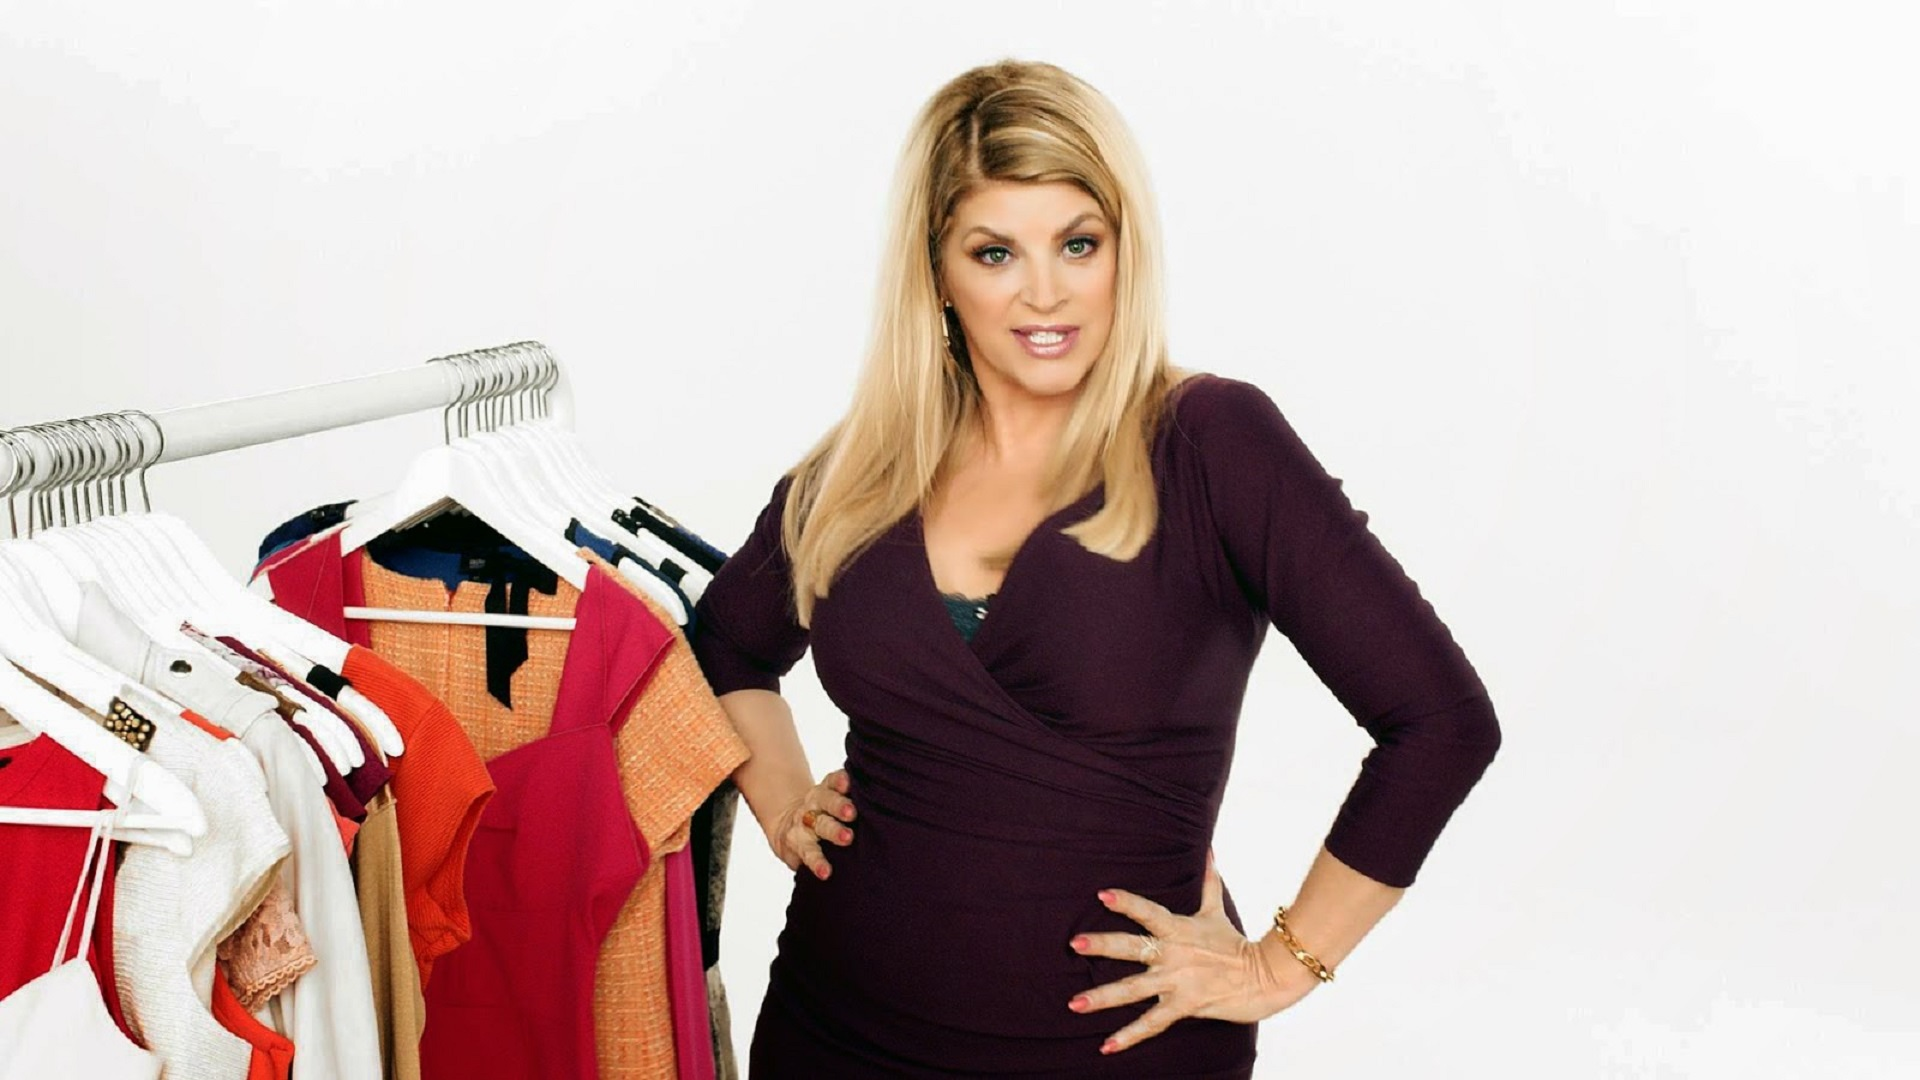 Kirstie Alley Images